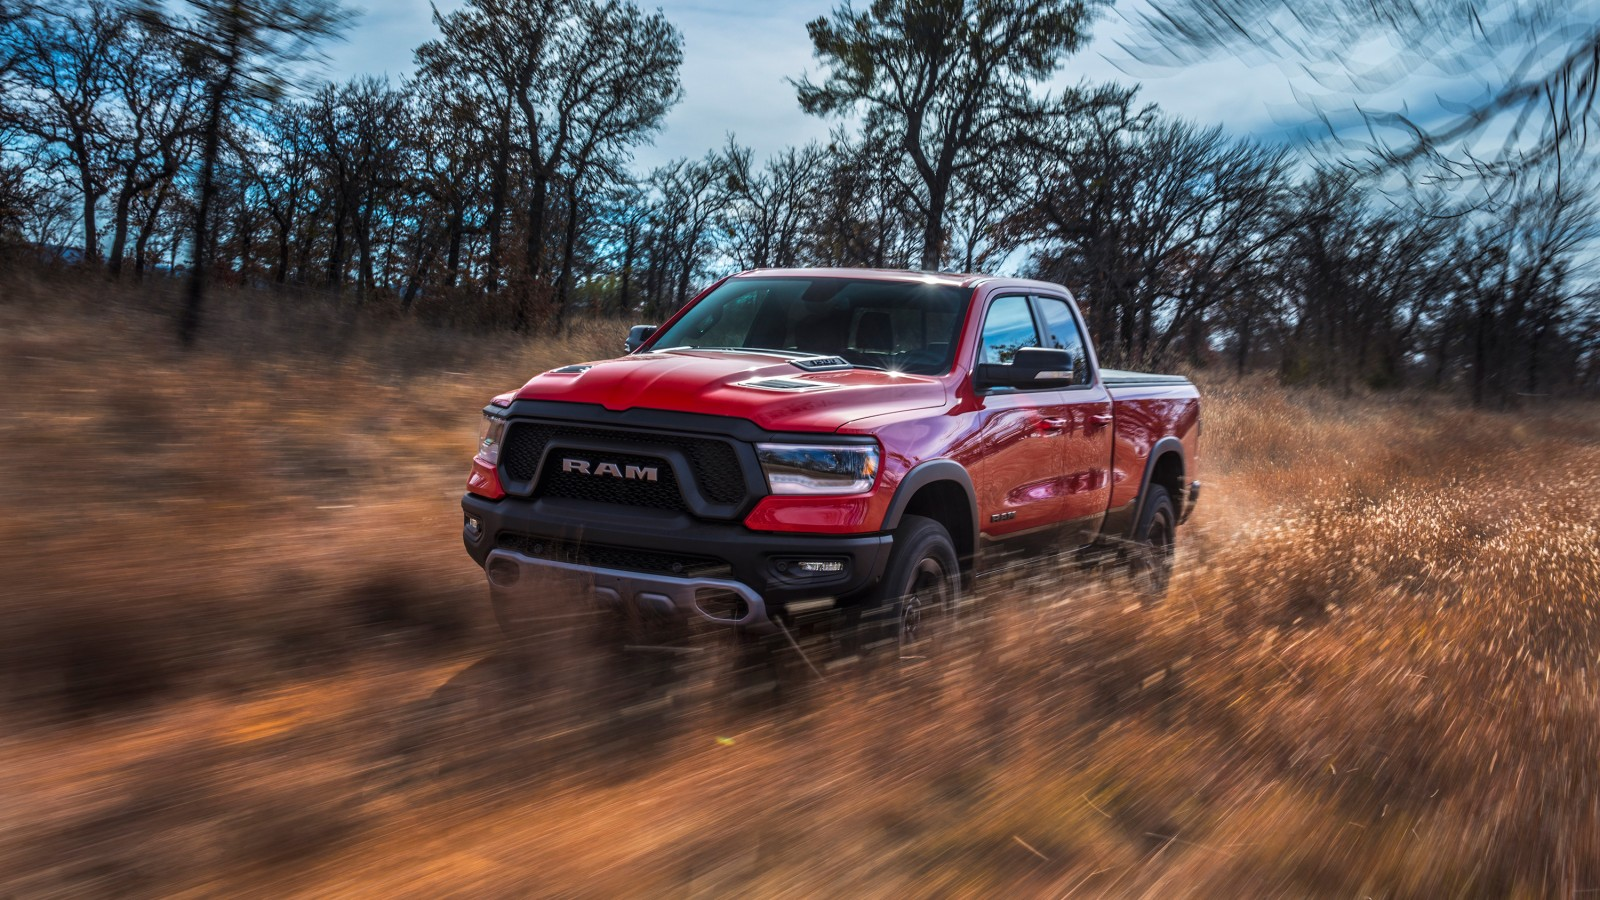 Dodge Ram Quad Cab >> 2019 Ram 1500 Rebel Quad Cab 2 Wallpaper | HD Car Wallpapers | ID #9407